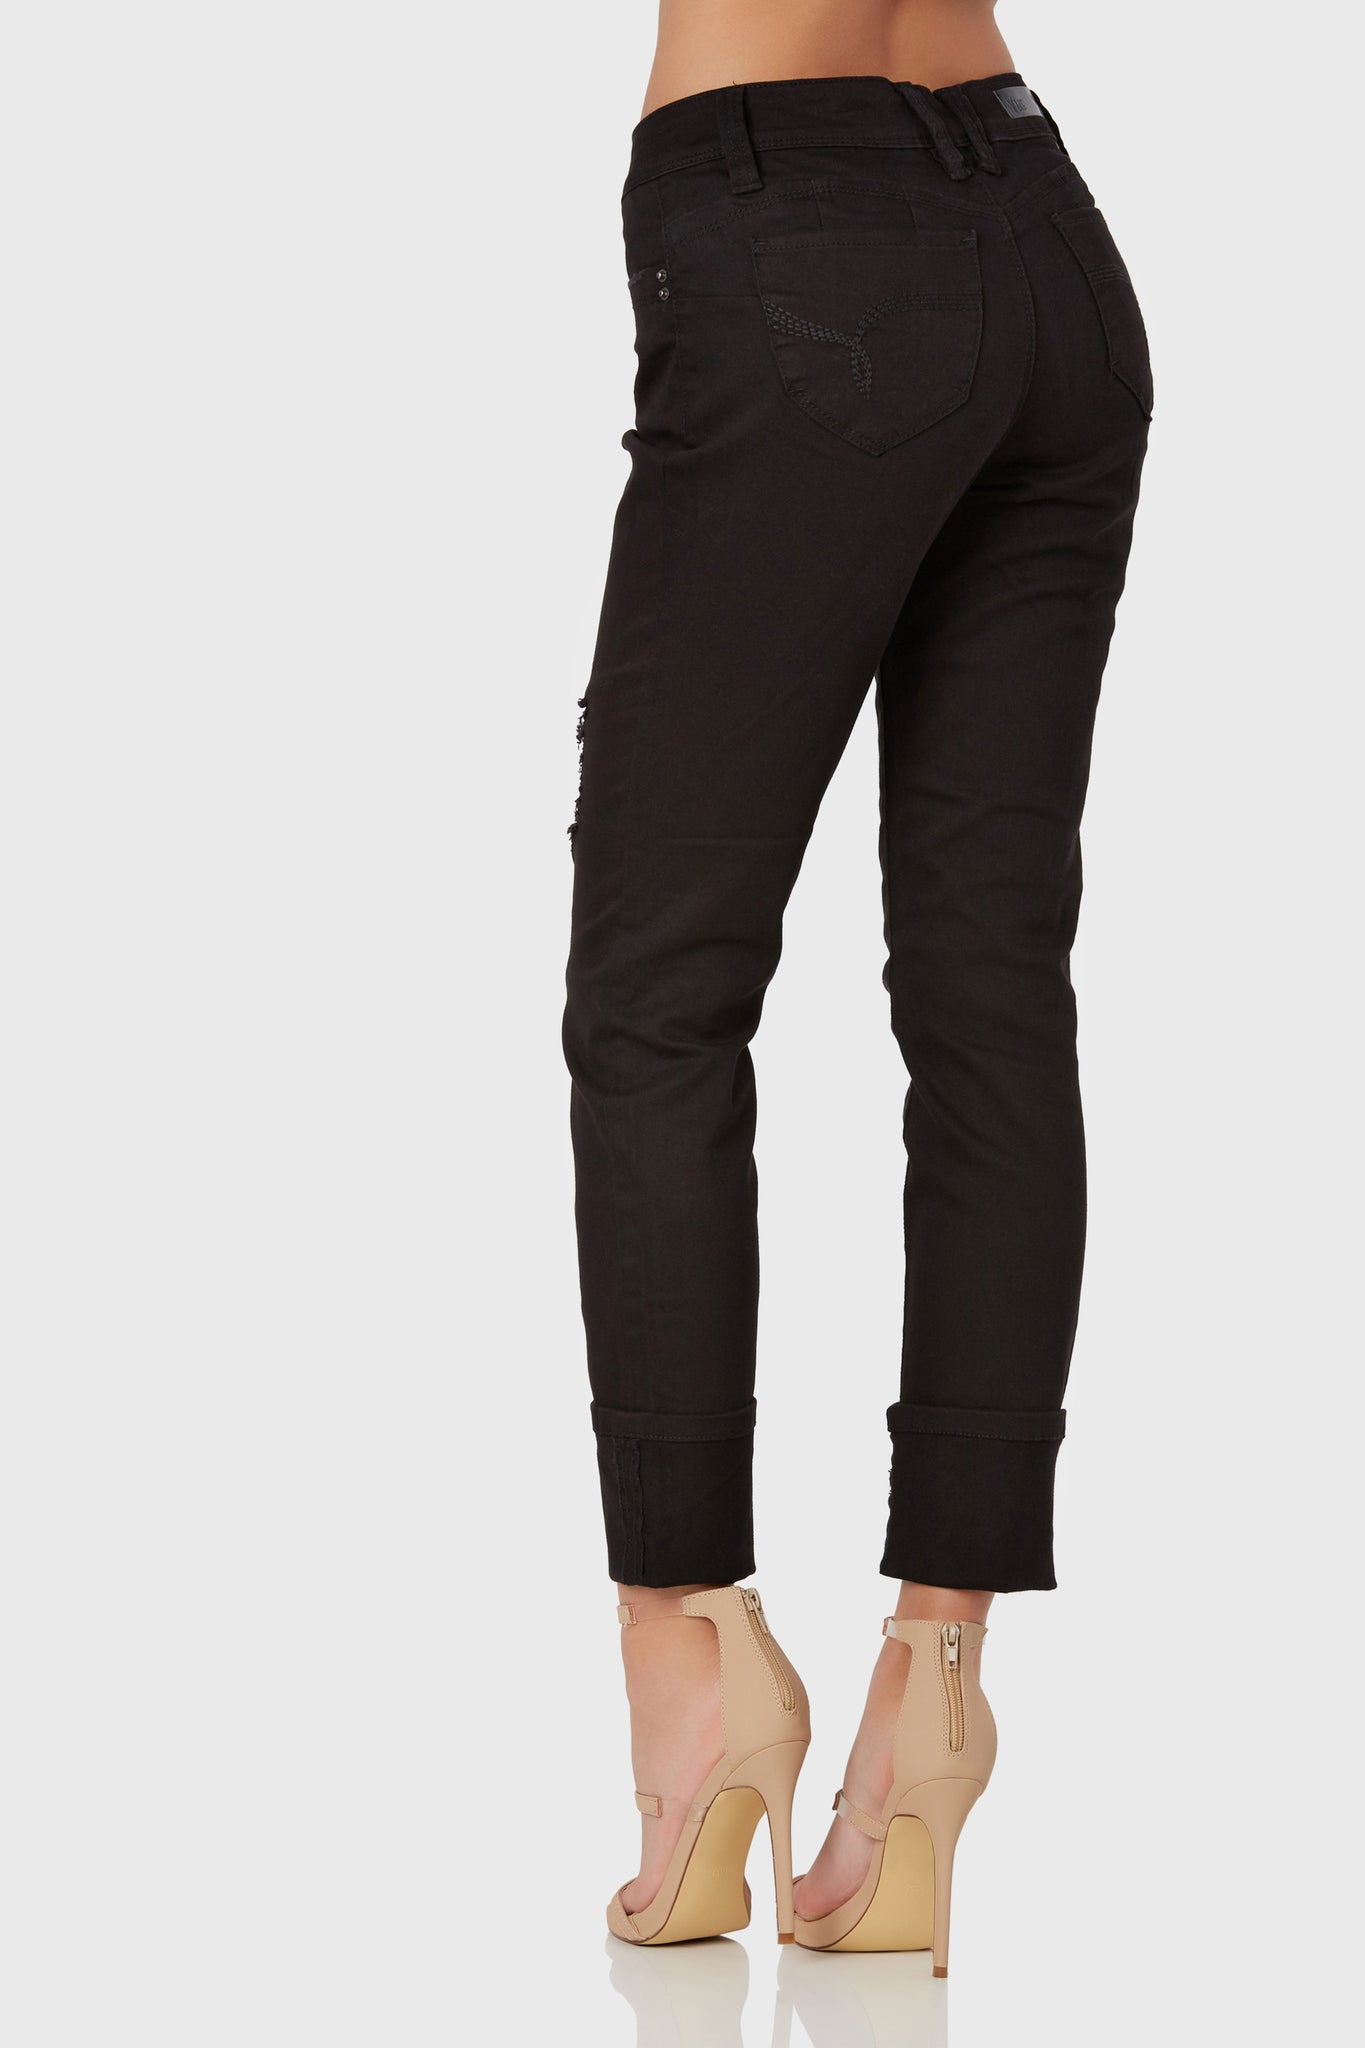 Classic mid rise skinnies with trendy 4 cuff design. Subtle distressing with heartshape seam in back to flatter the bum.